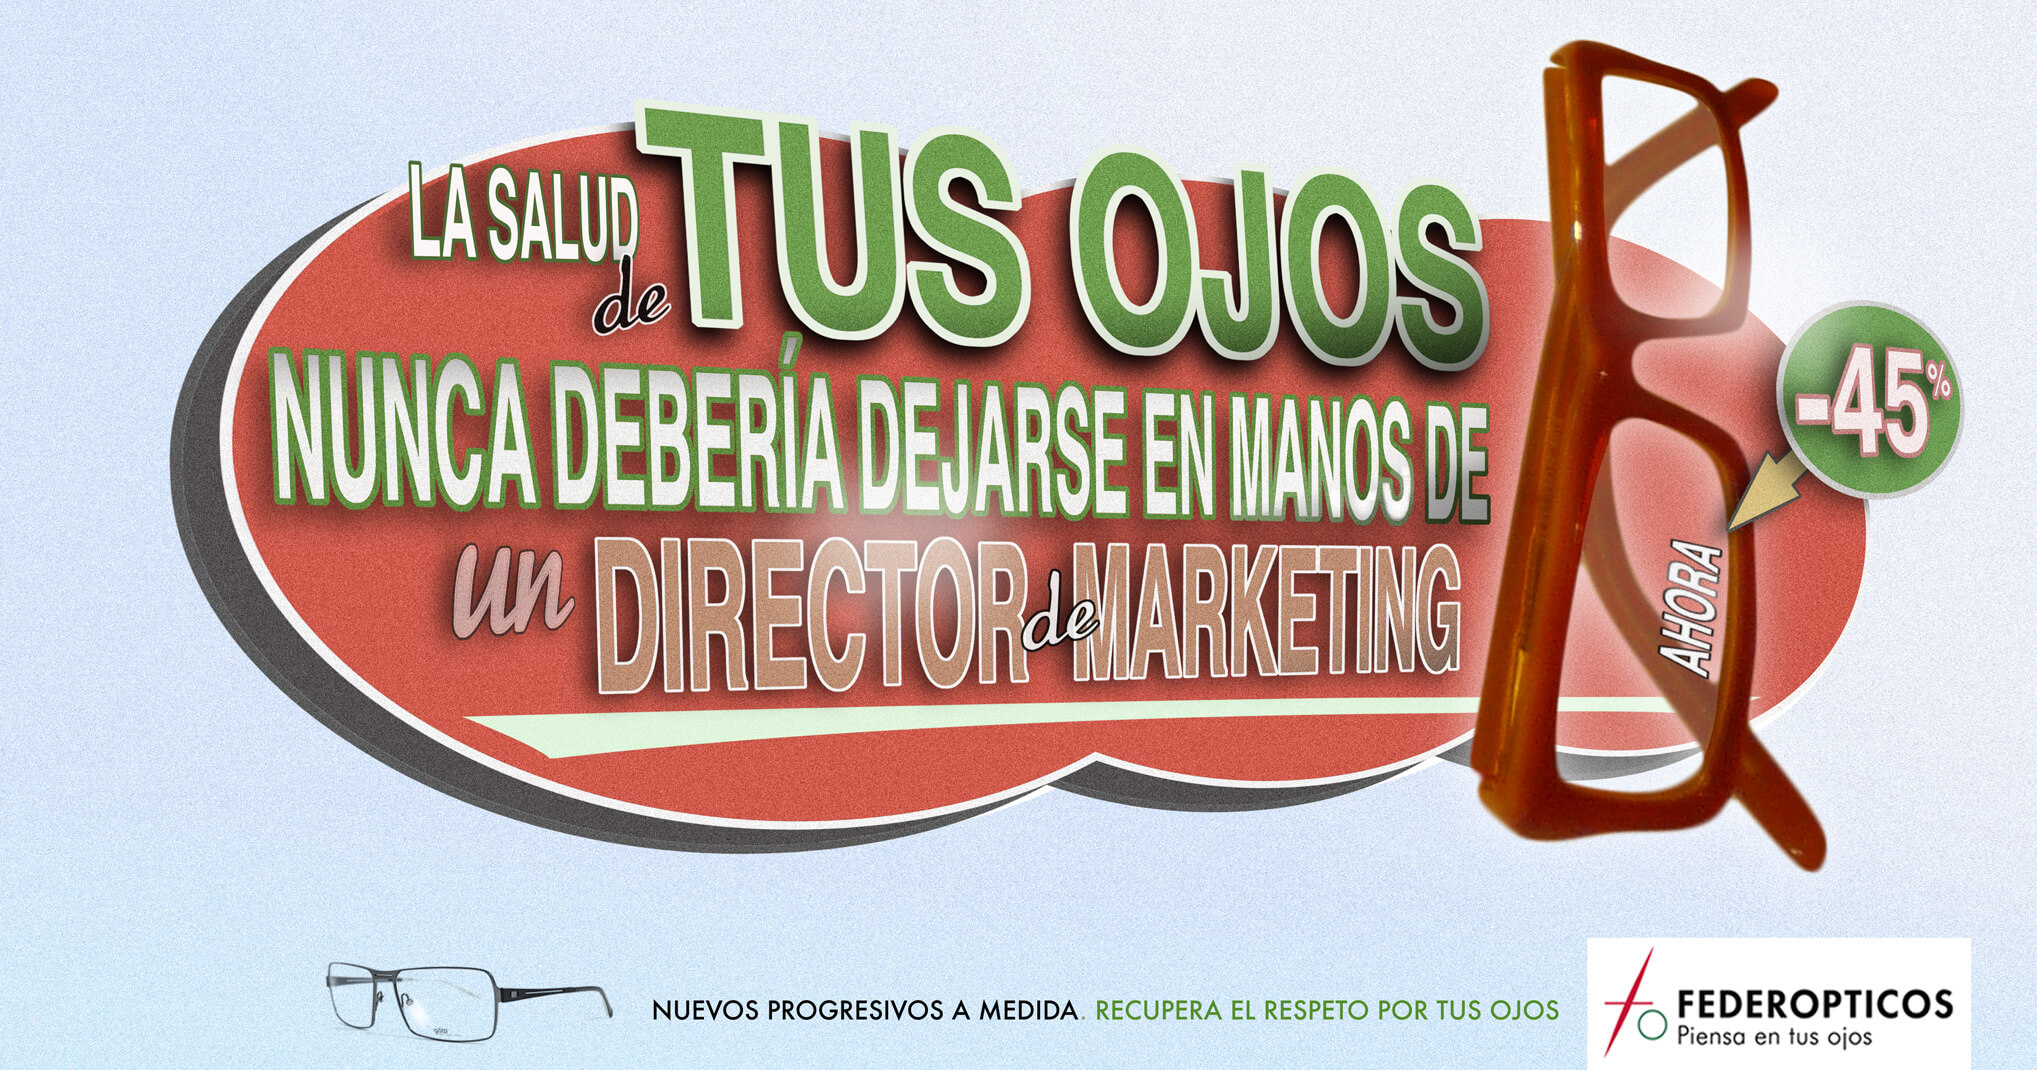 017-federopticos-marketing-2-grafico